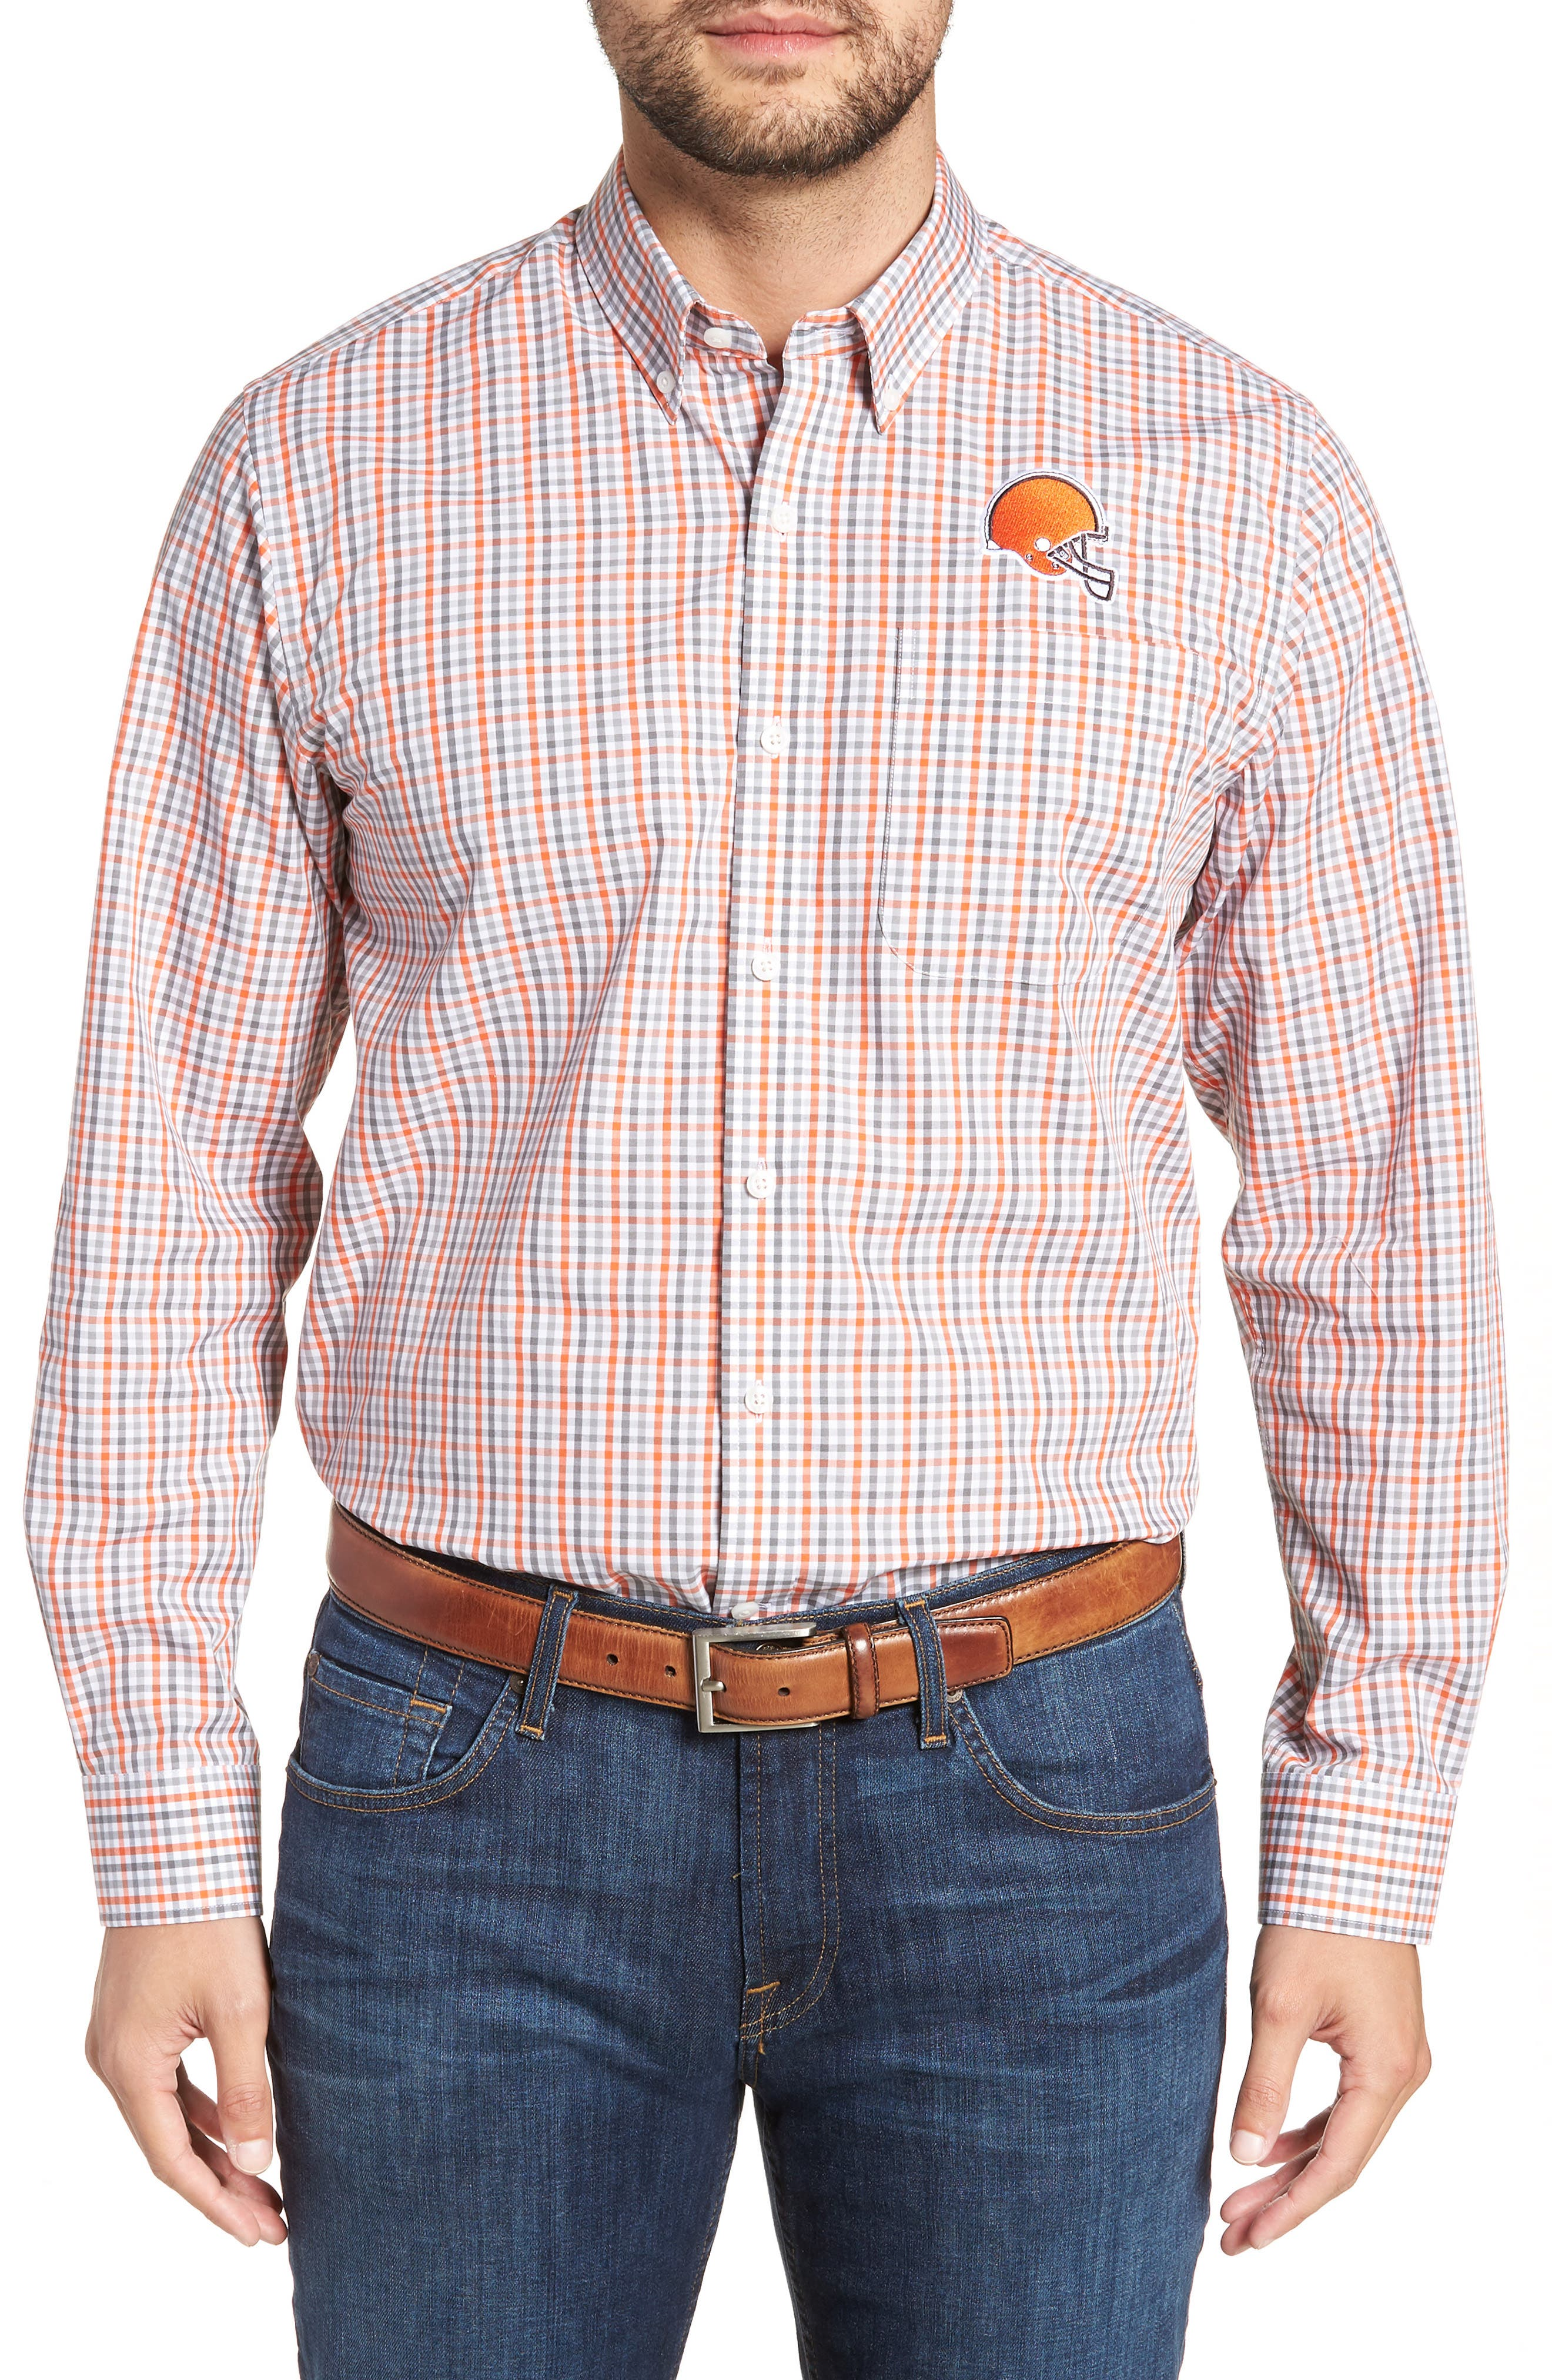 Cleveland Browns - Gilman Regular Fit Plaid Sport Shirt,                         Main,                         color, COLLEGE ORANGE